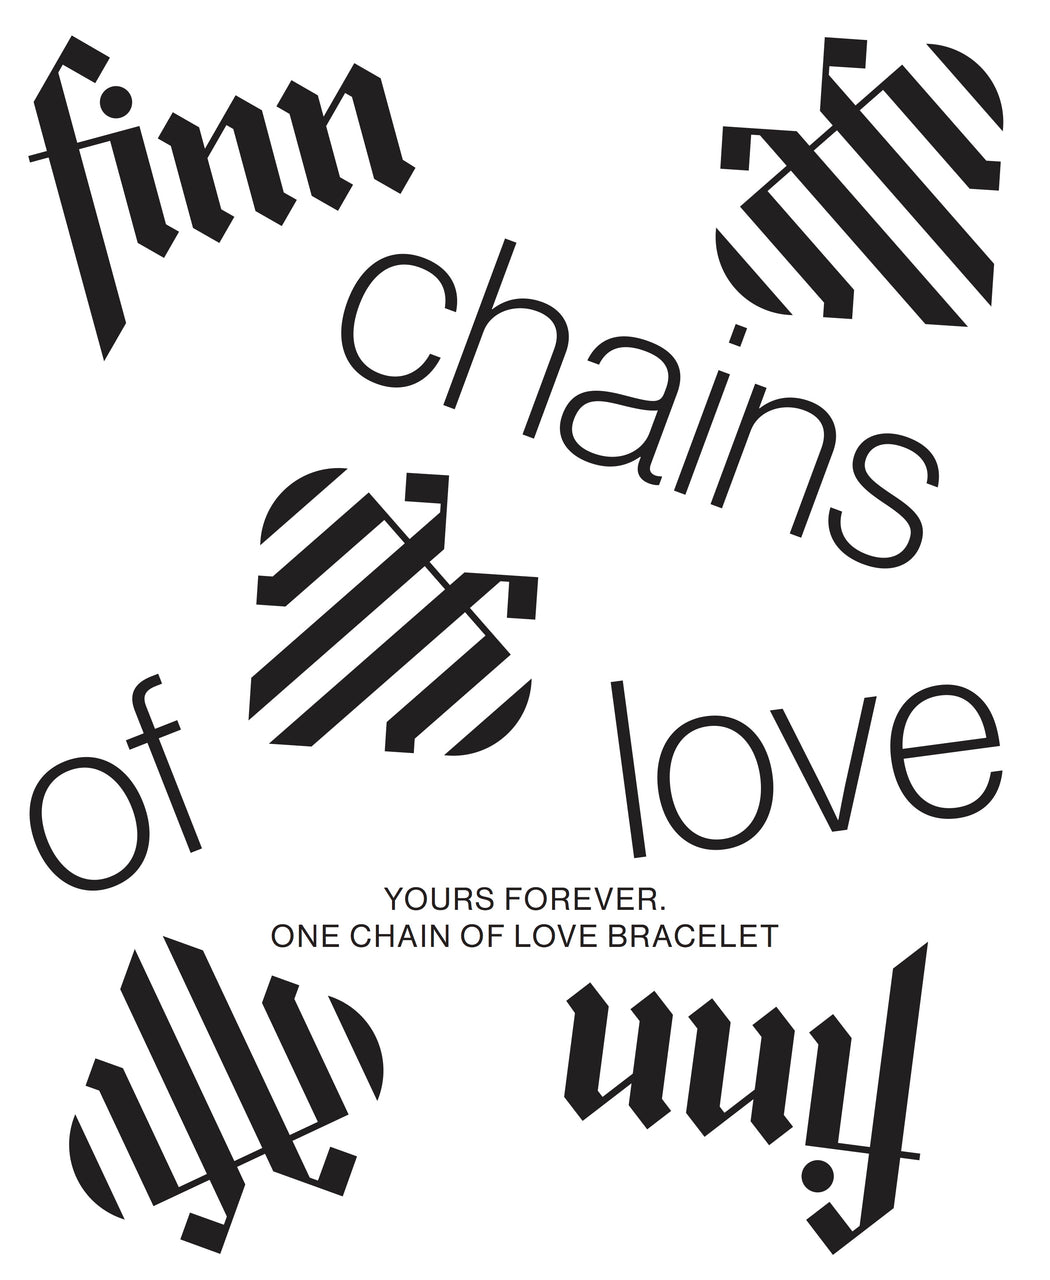 Chains of Love Gift Card